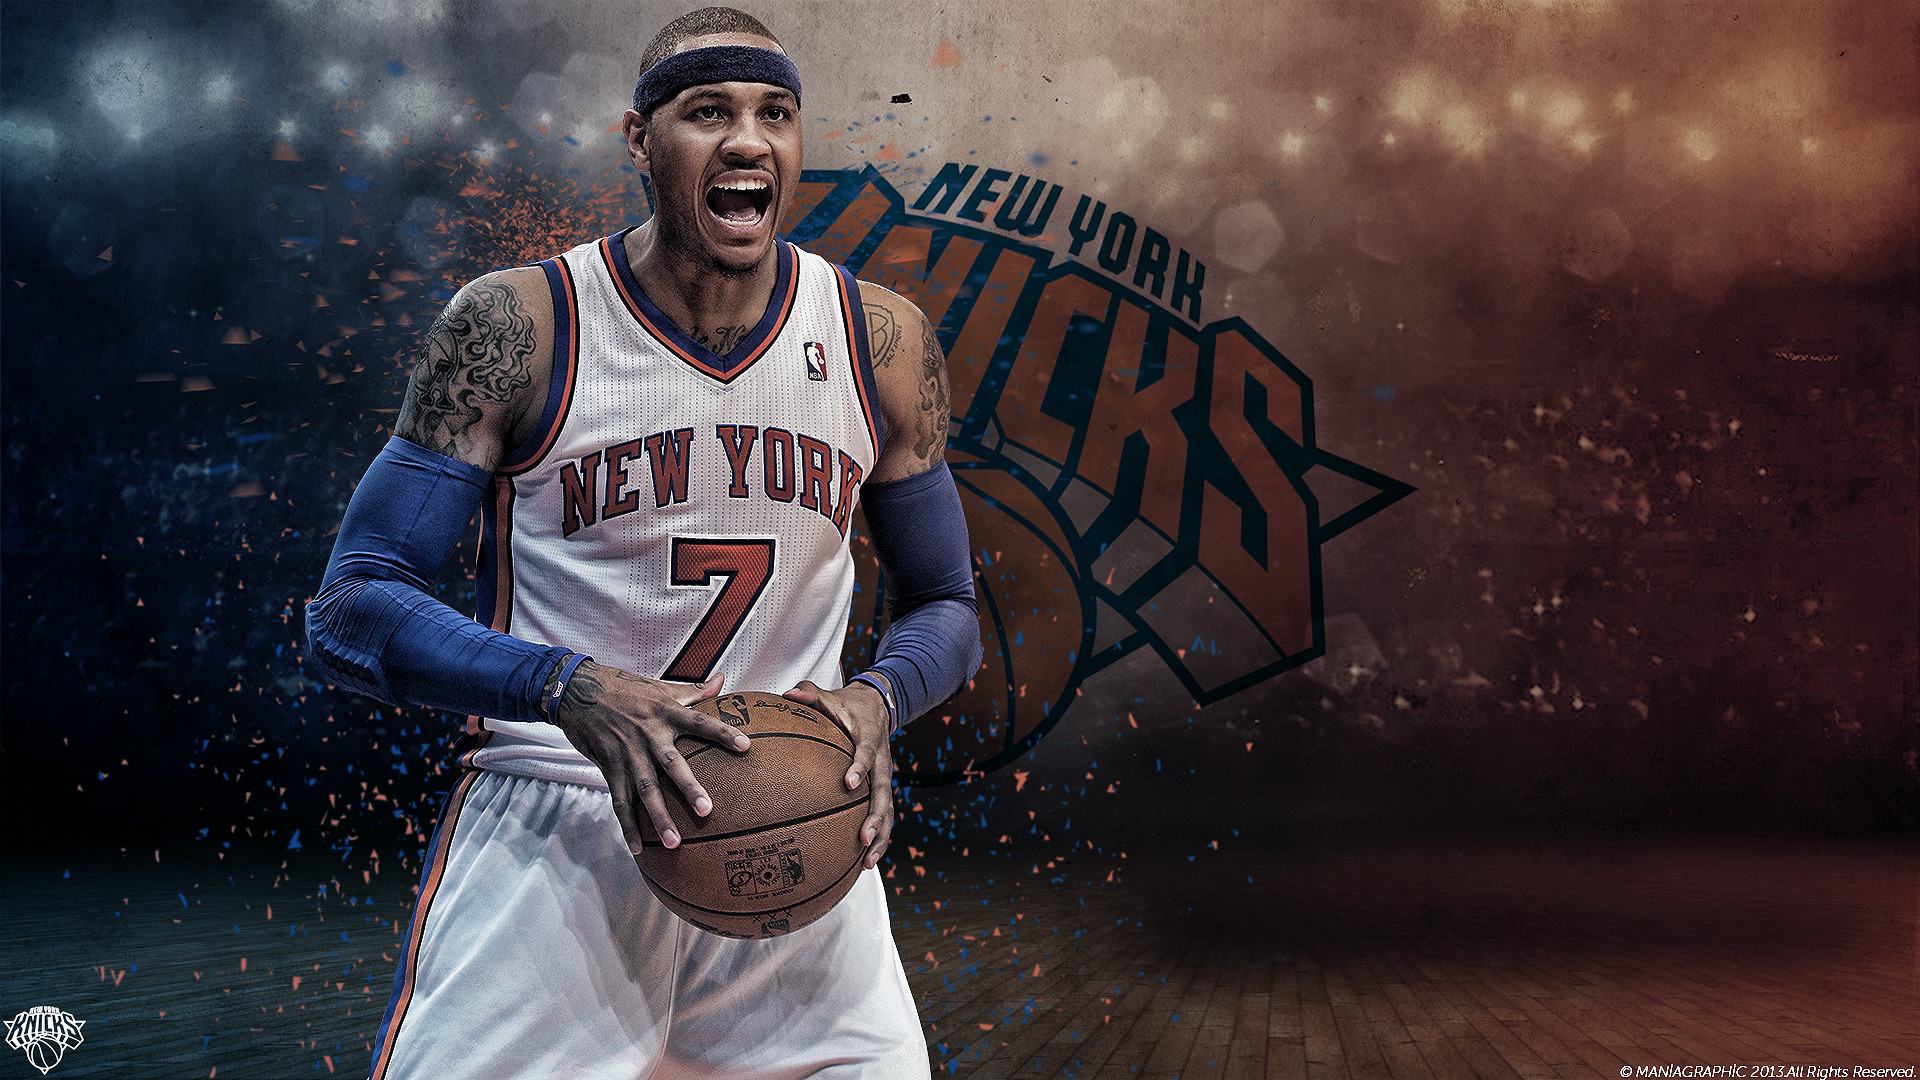 1920x1080 carmelo anthony wallpaper by maniagraphic fan art wallpaper other 2013